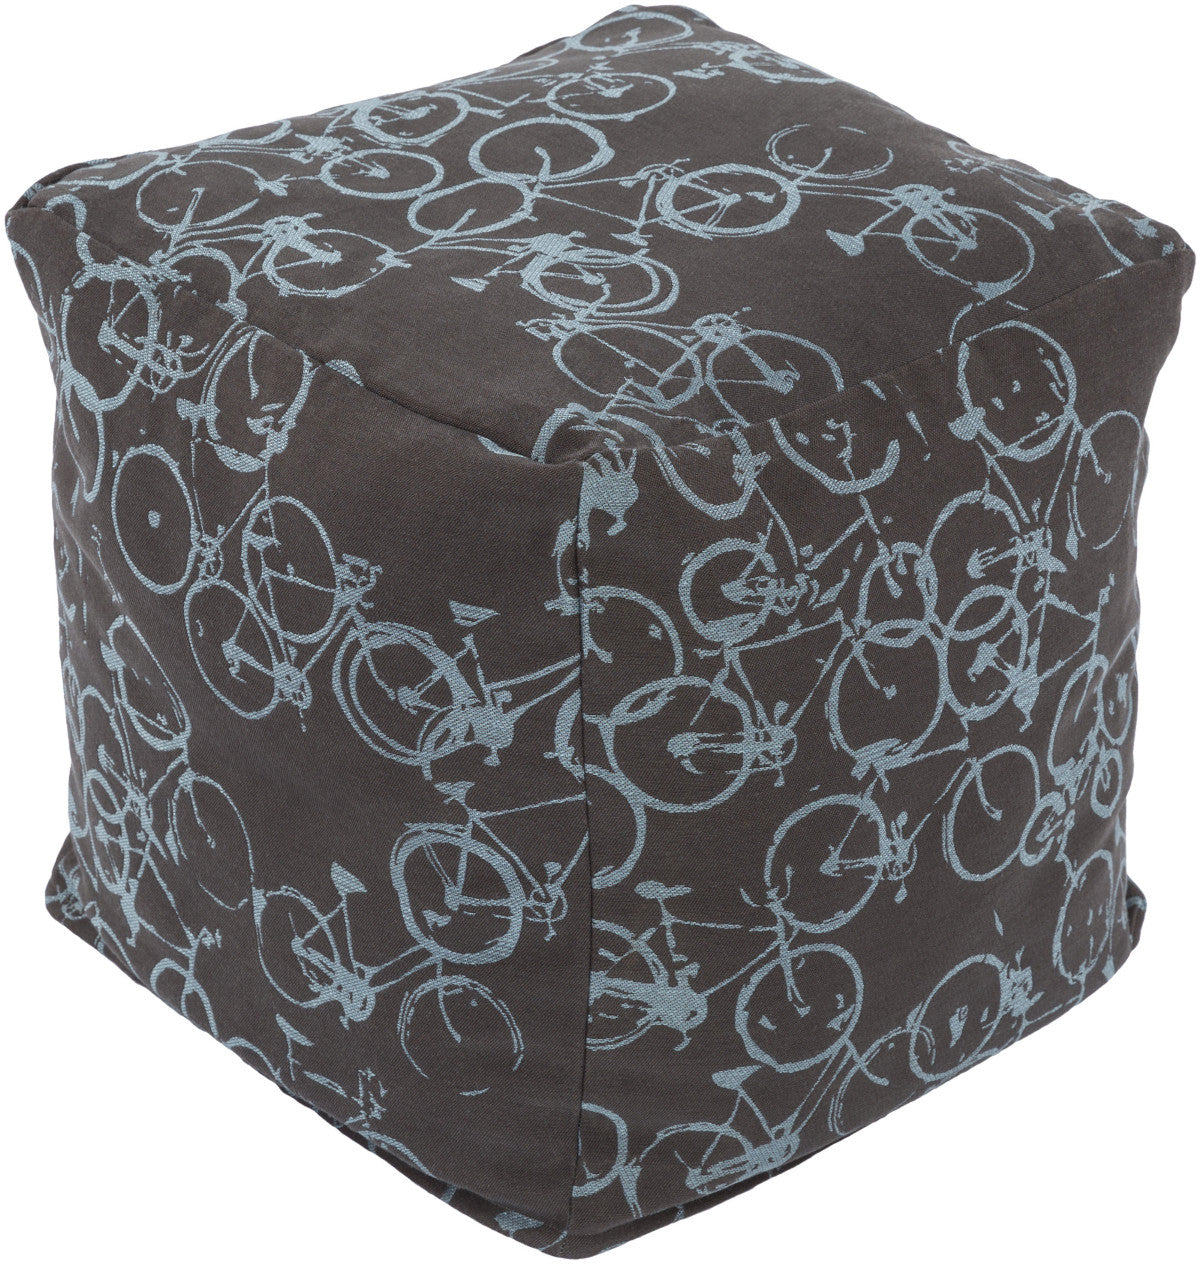 Surya Peddle Power PDPF-001 Brown Pouf by Mike Farrell